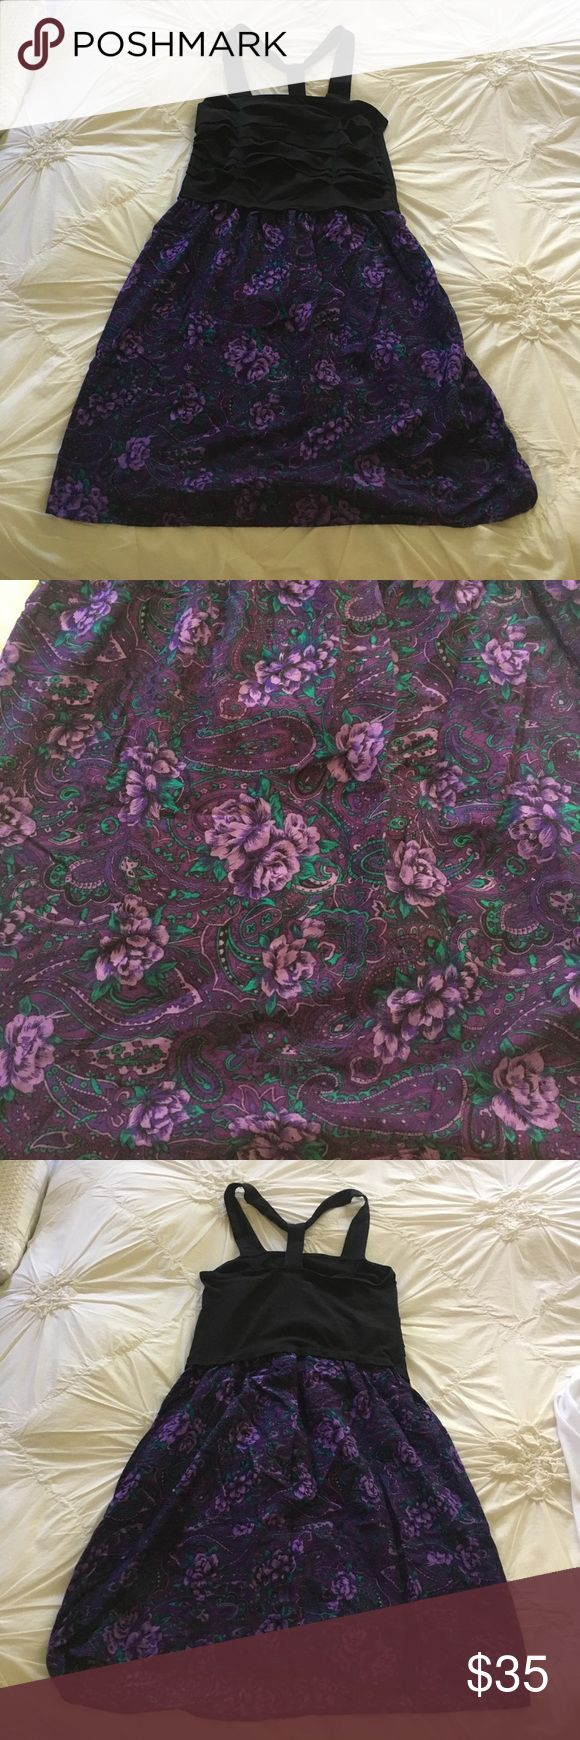 Urban Renewal Black and purple floral sundress. M Urban Renewal Black and purple floral sundress. M Tags are off but I never wore it. Urban Renewal Dresses Midi